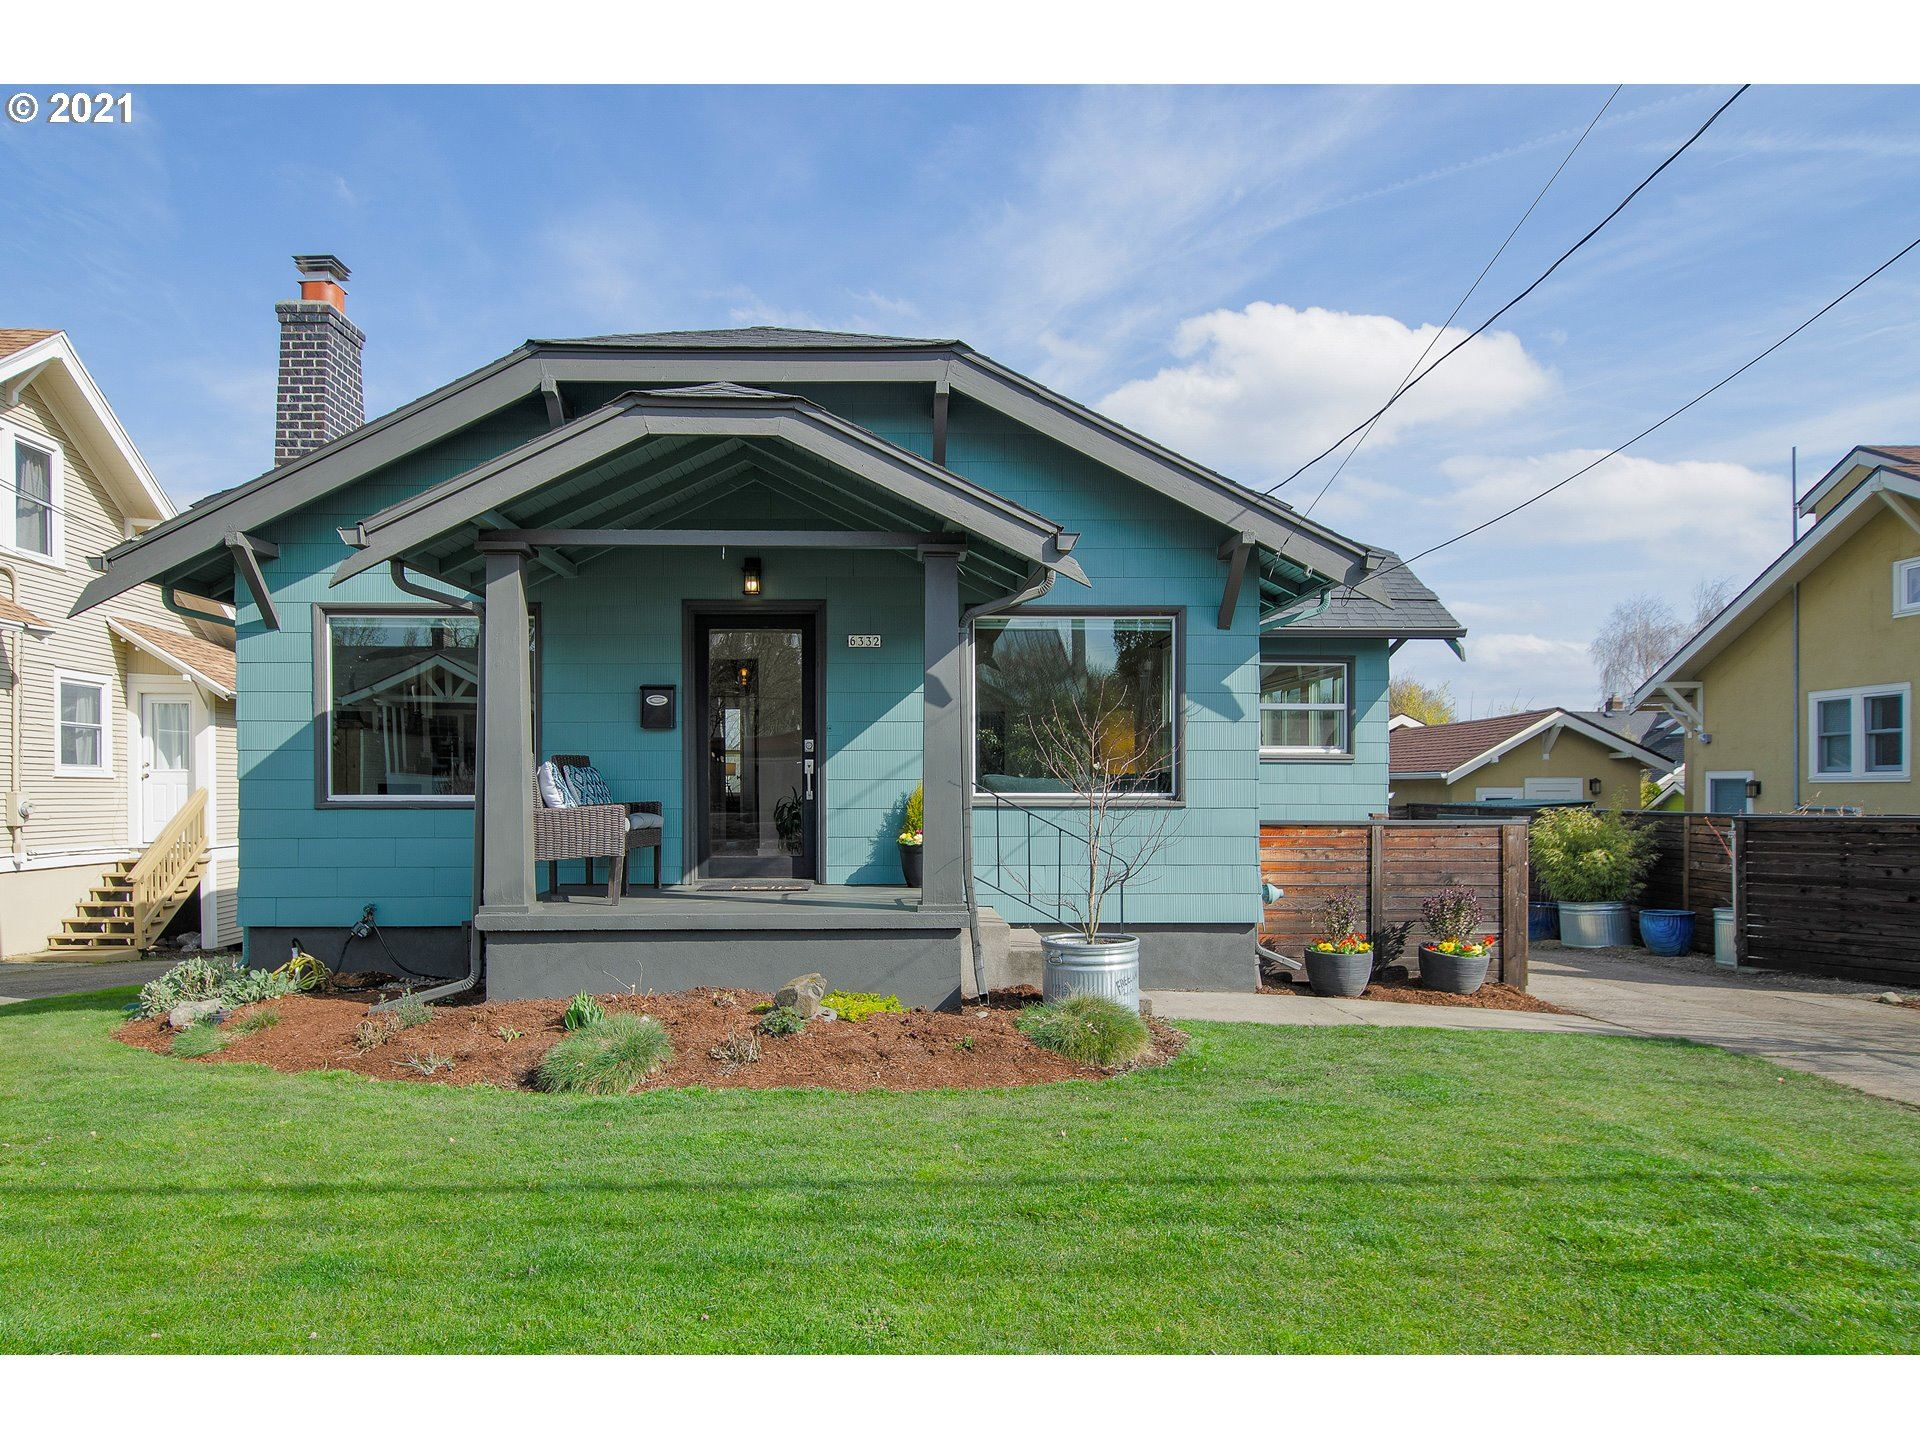 6332 SE 17TH AVE, Portland, OR 97202 - MLS#: 21577102